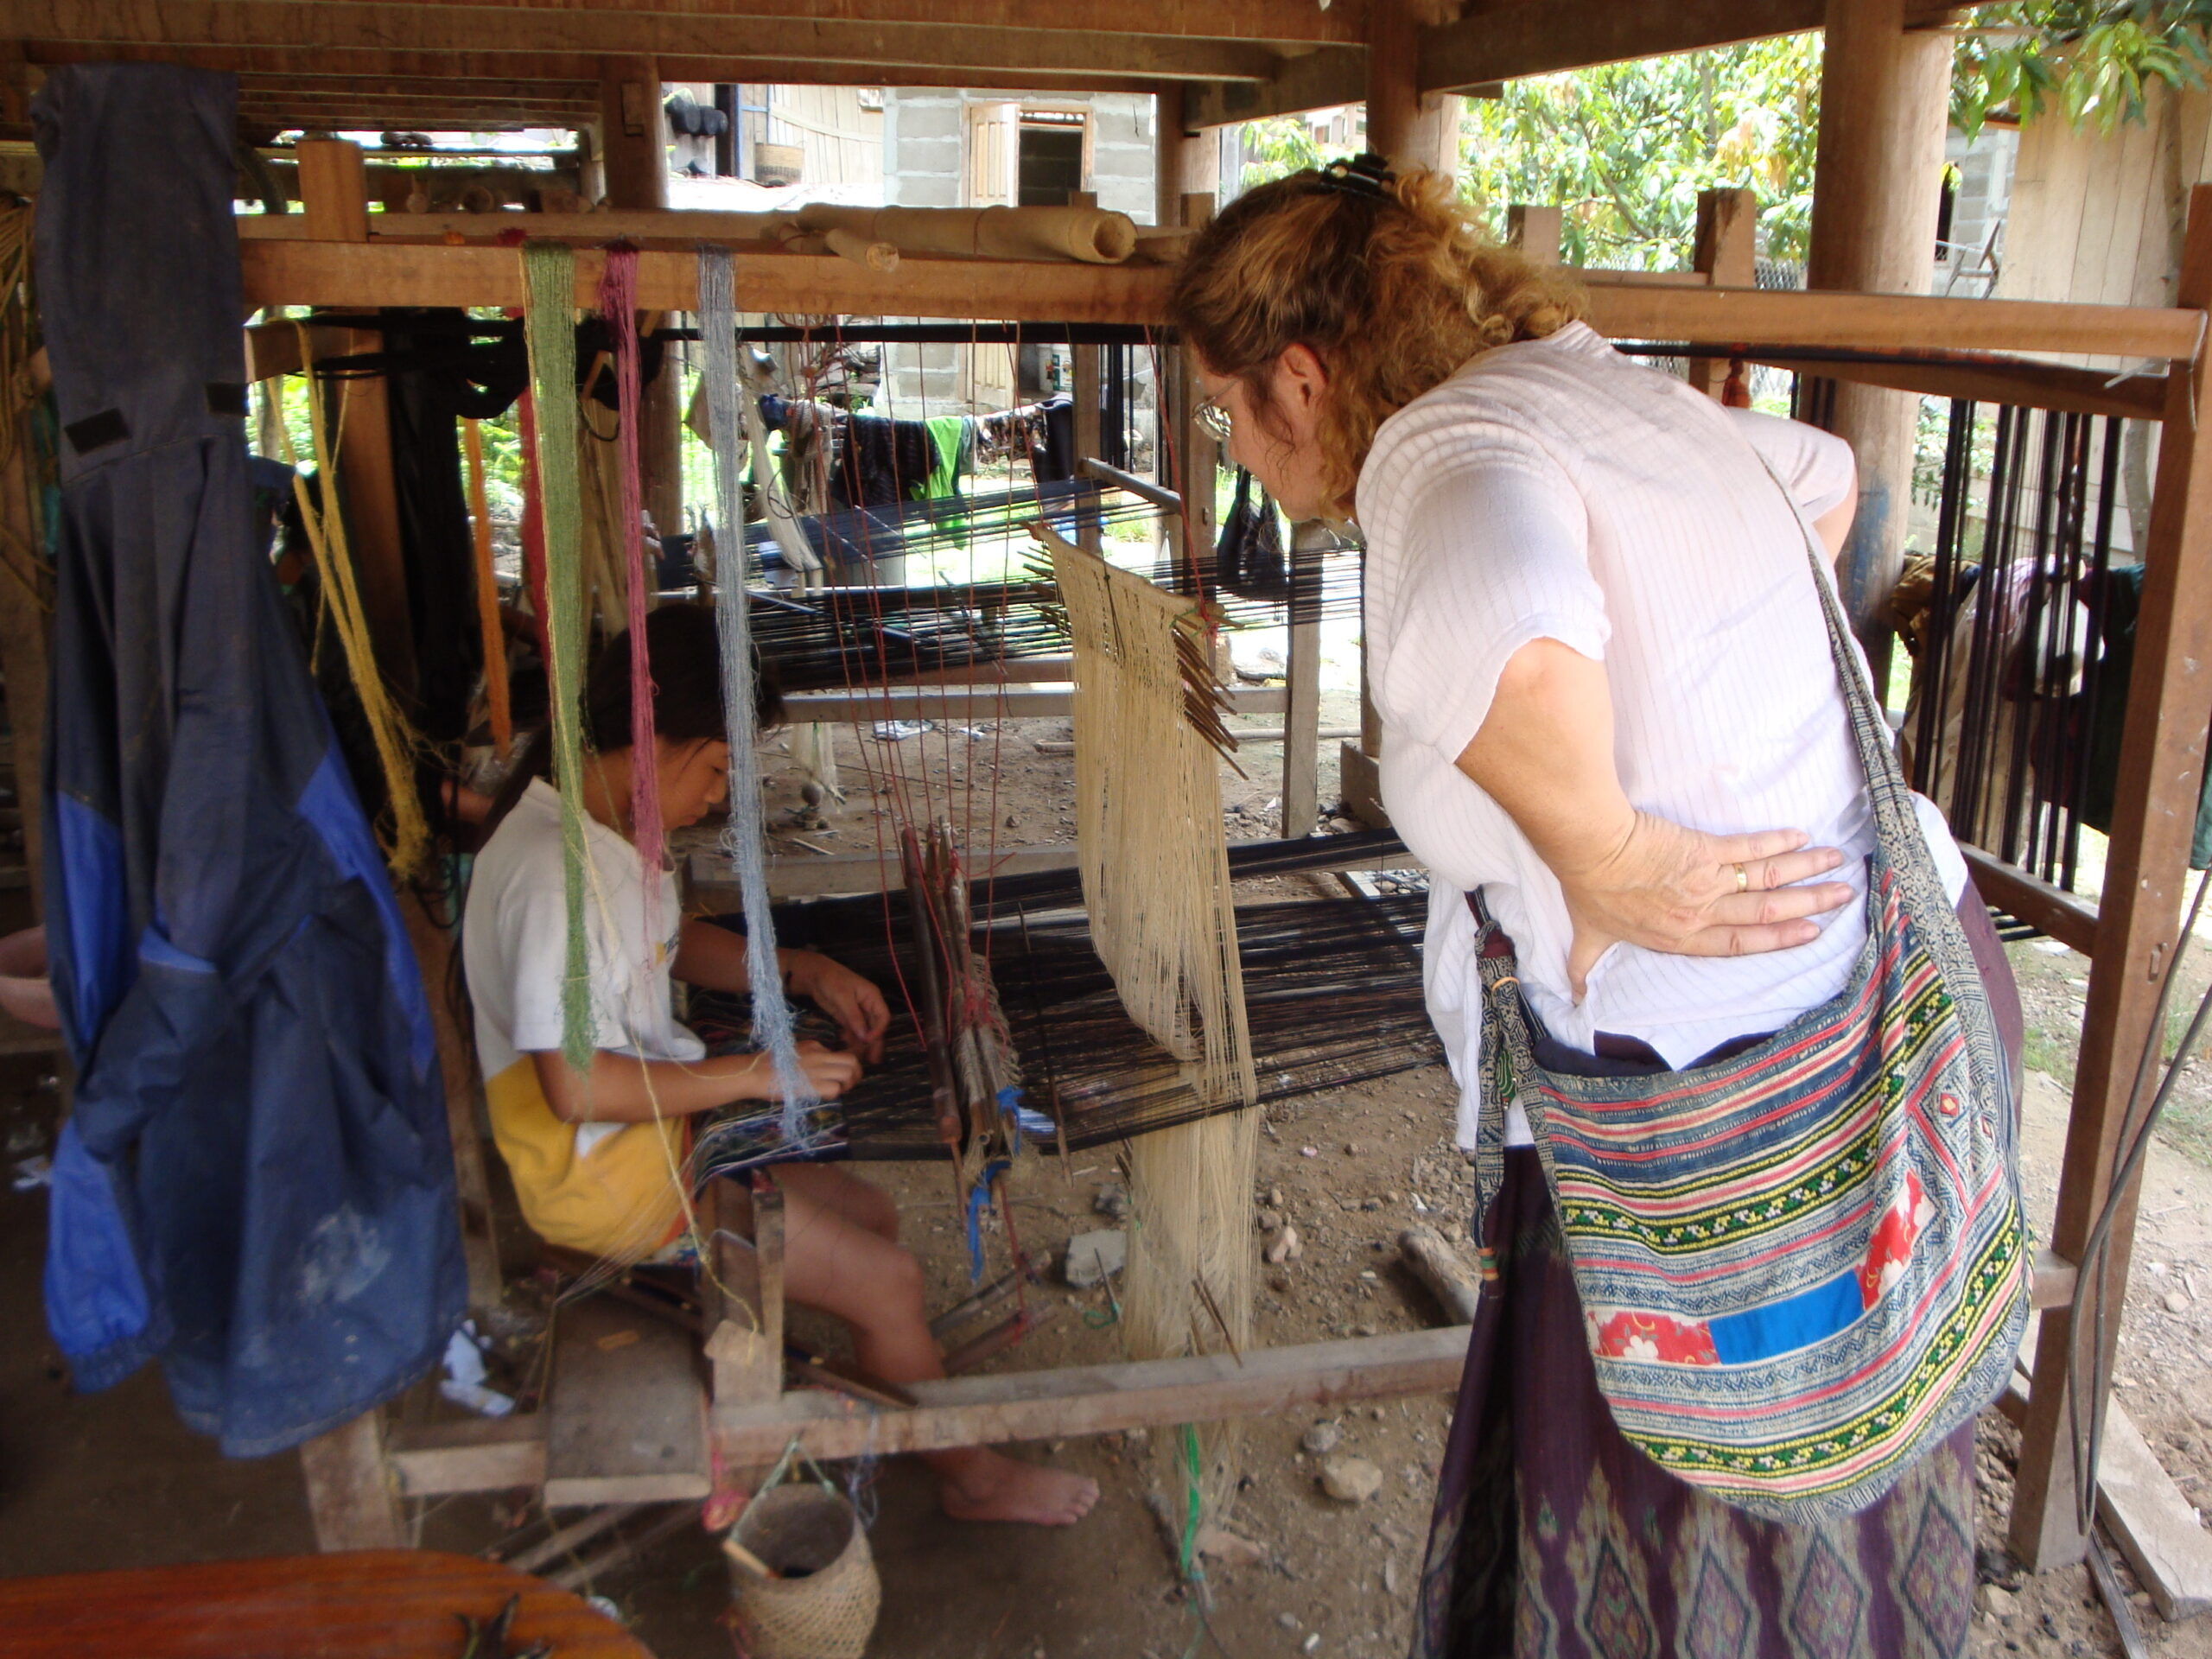 Maren leans in to watch; weaving can be mesmerizing!